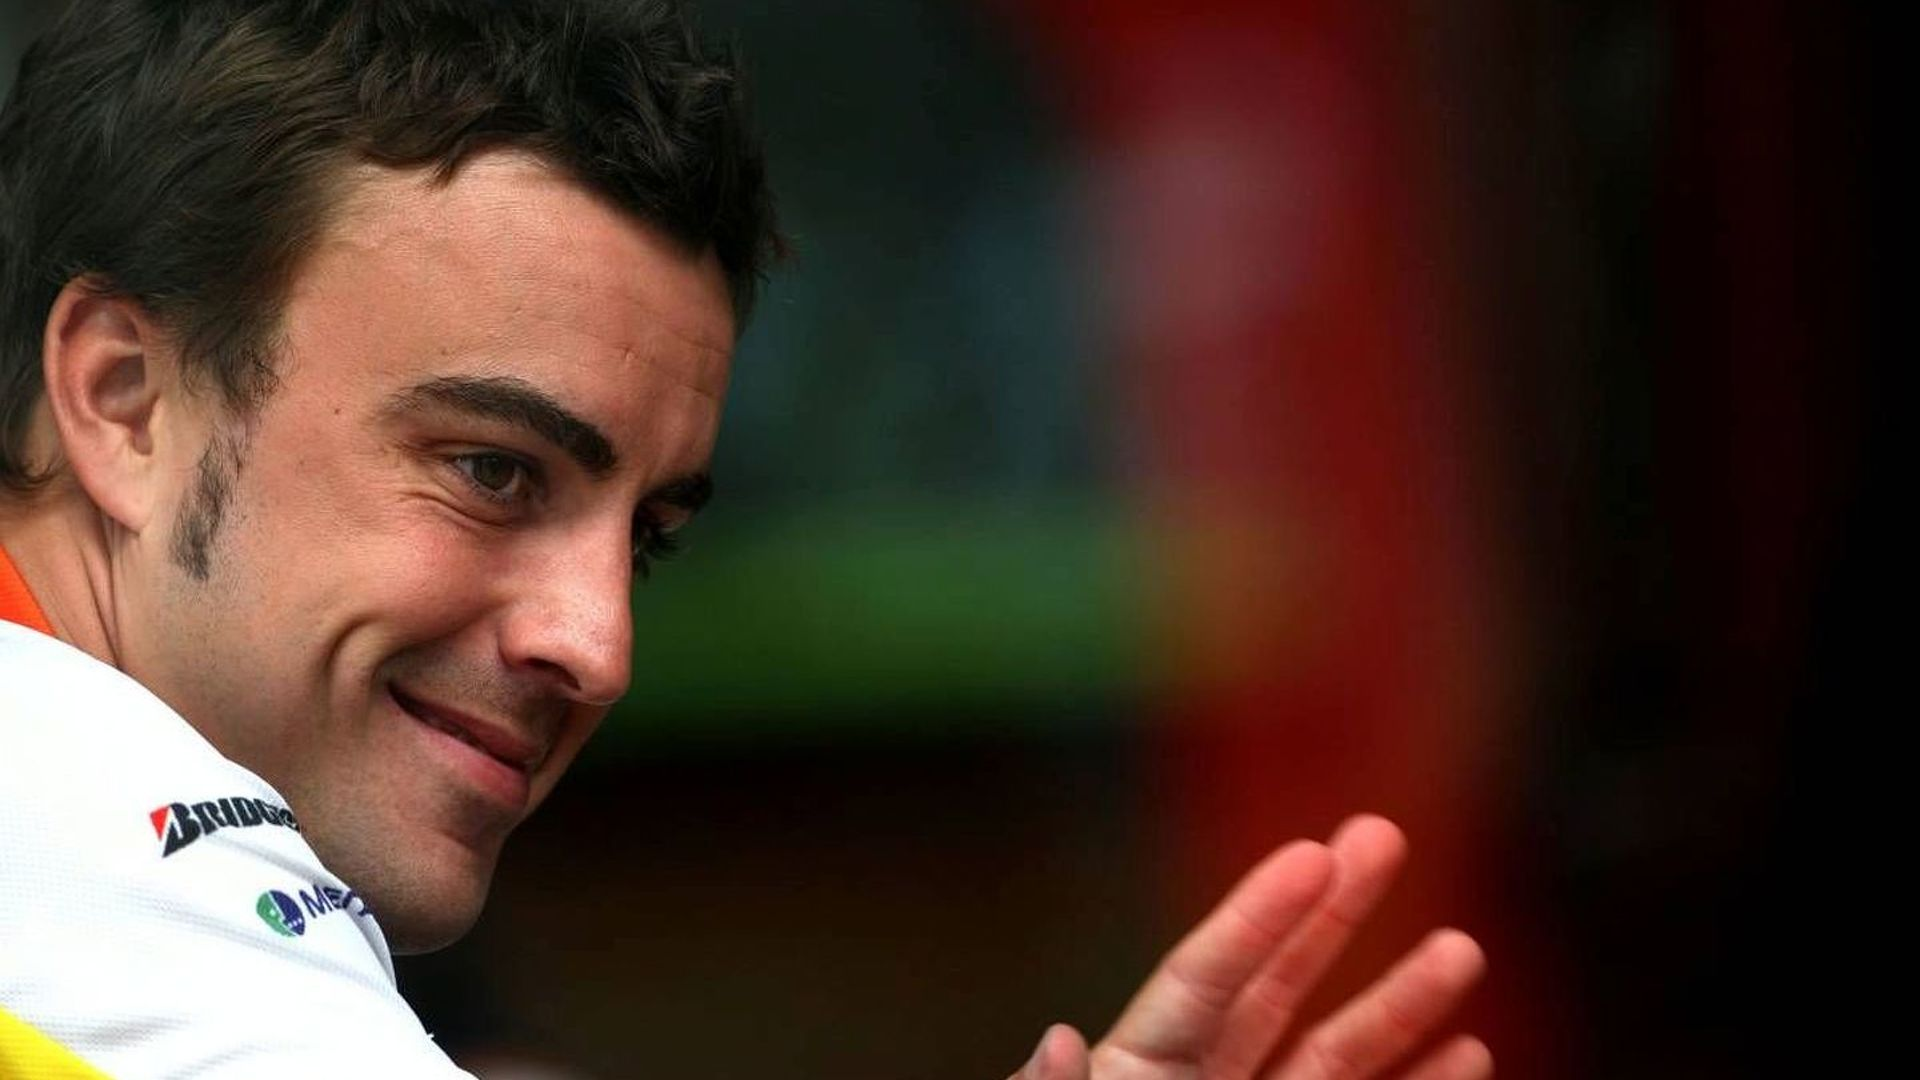 Alonso advises Renault to sign Kubica